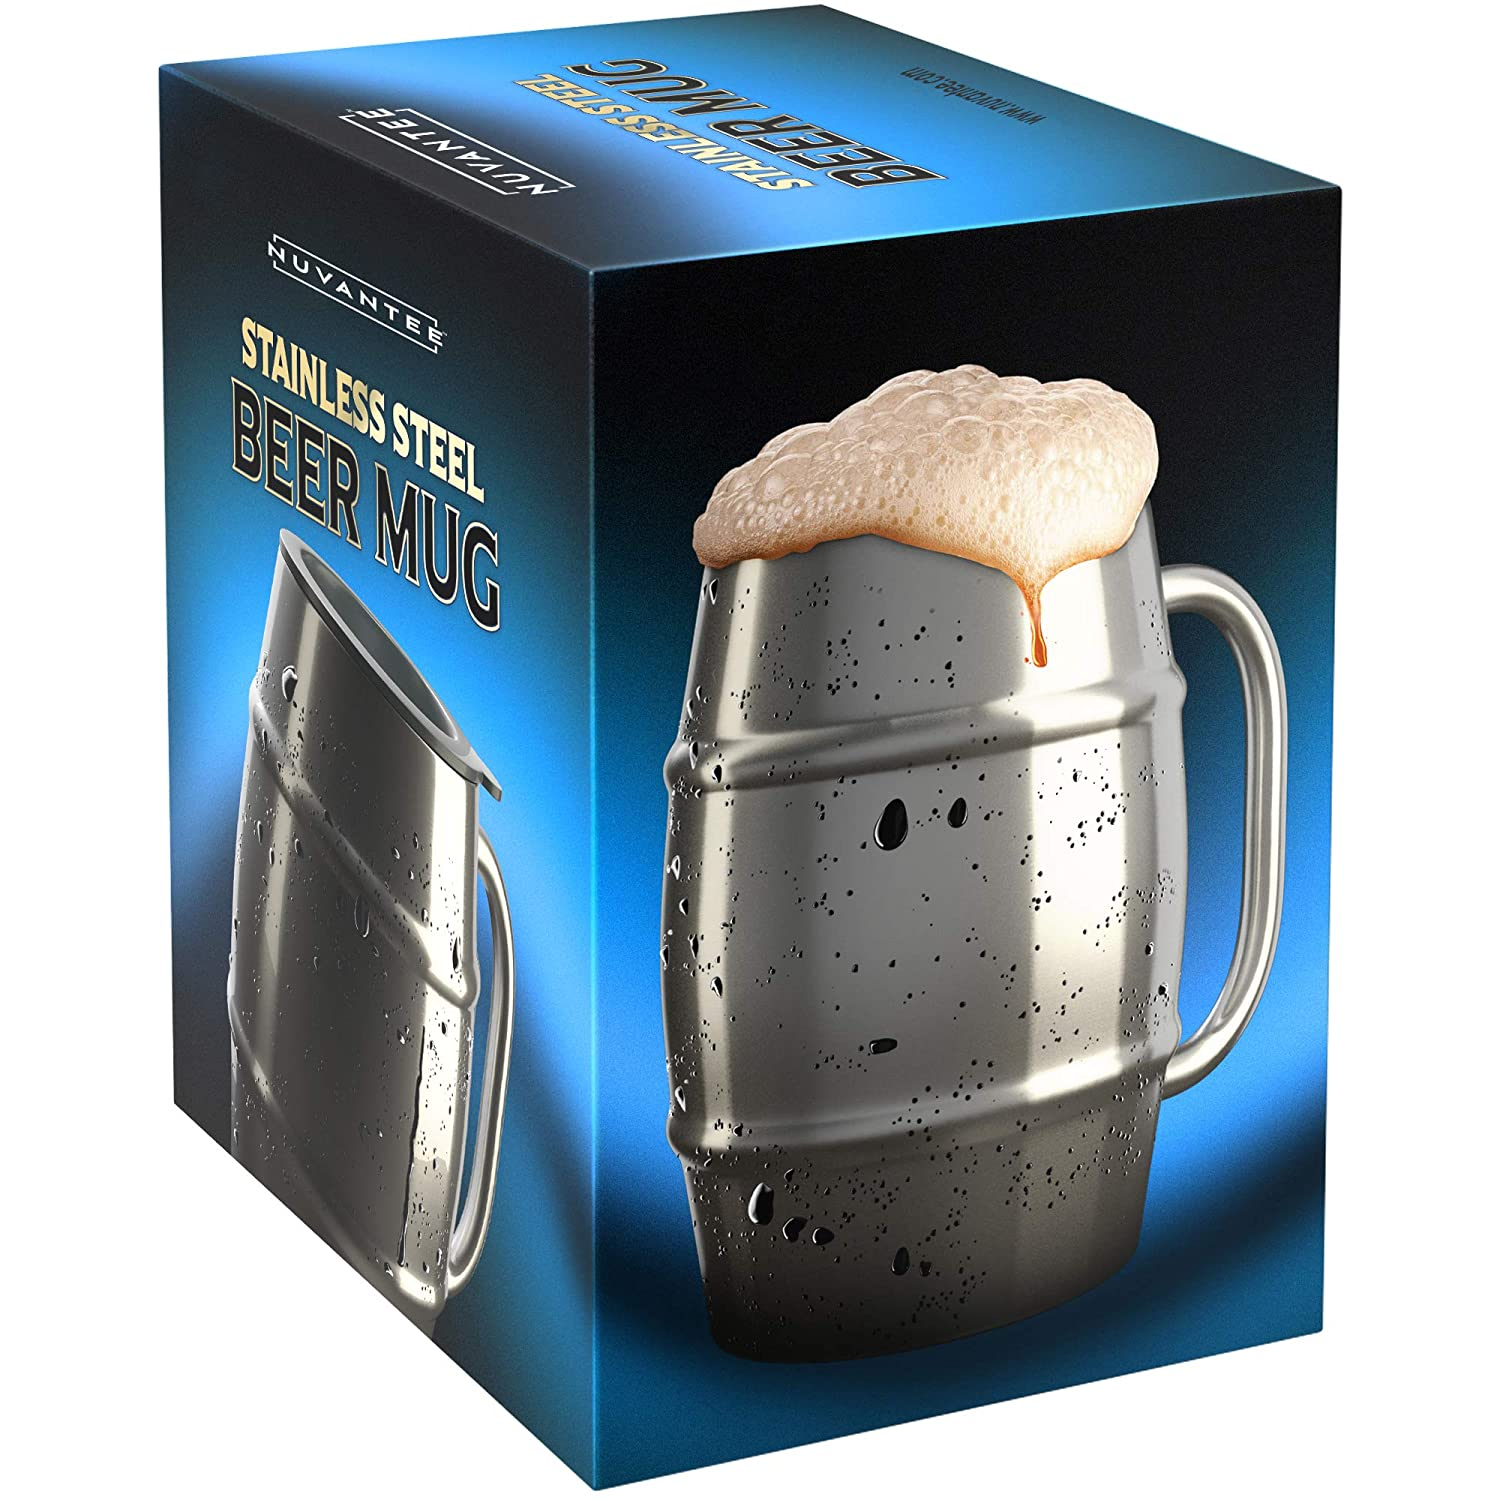 Nuvantee Beer Mug - Premium Stainless Steel Mug/Coffee Cup with Bonus Lid, Silver